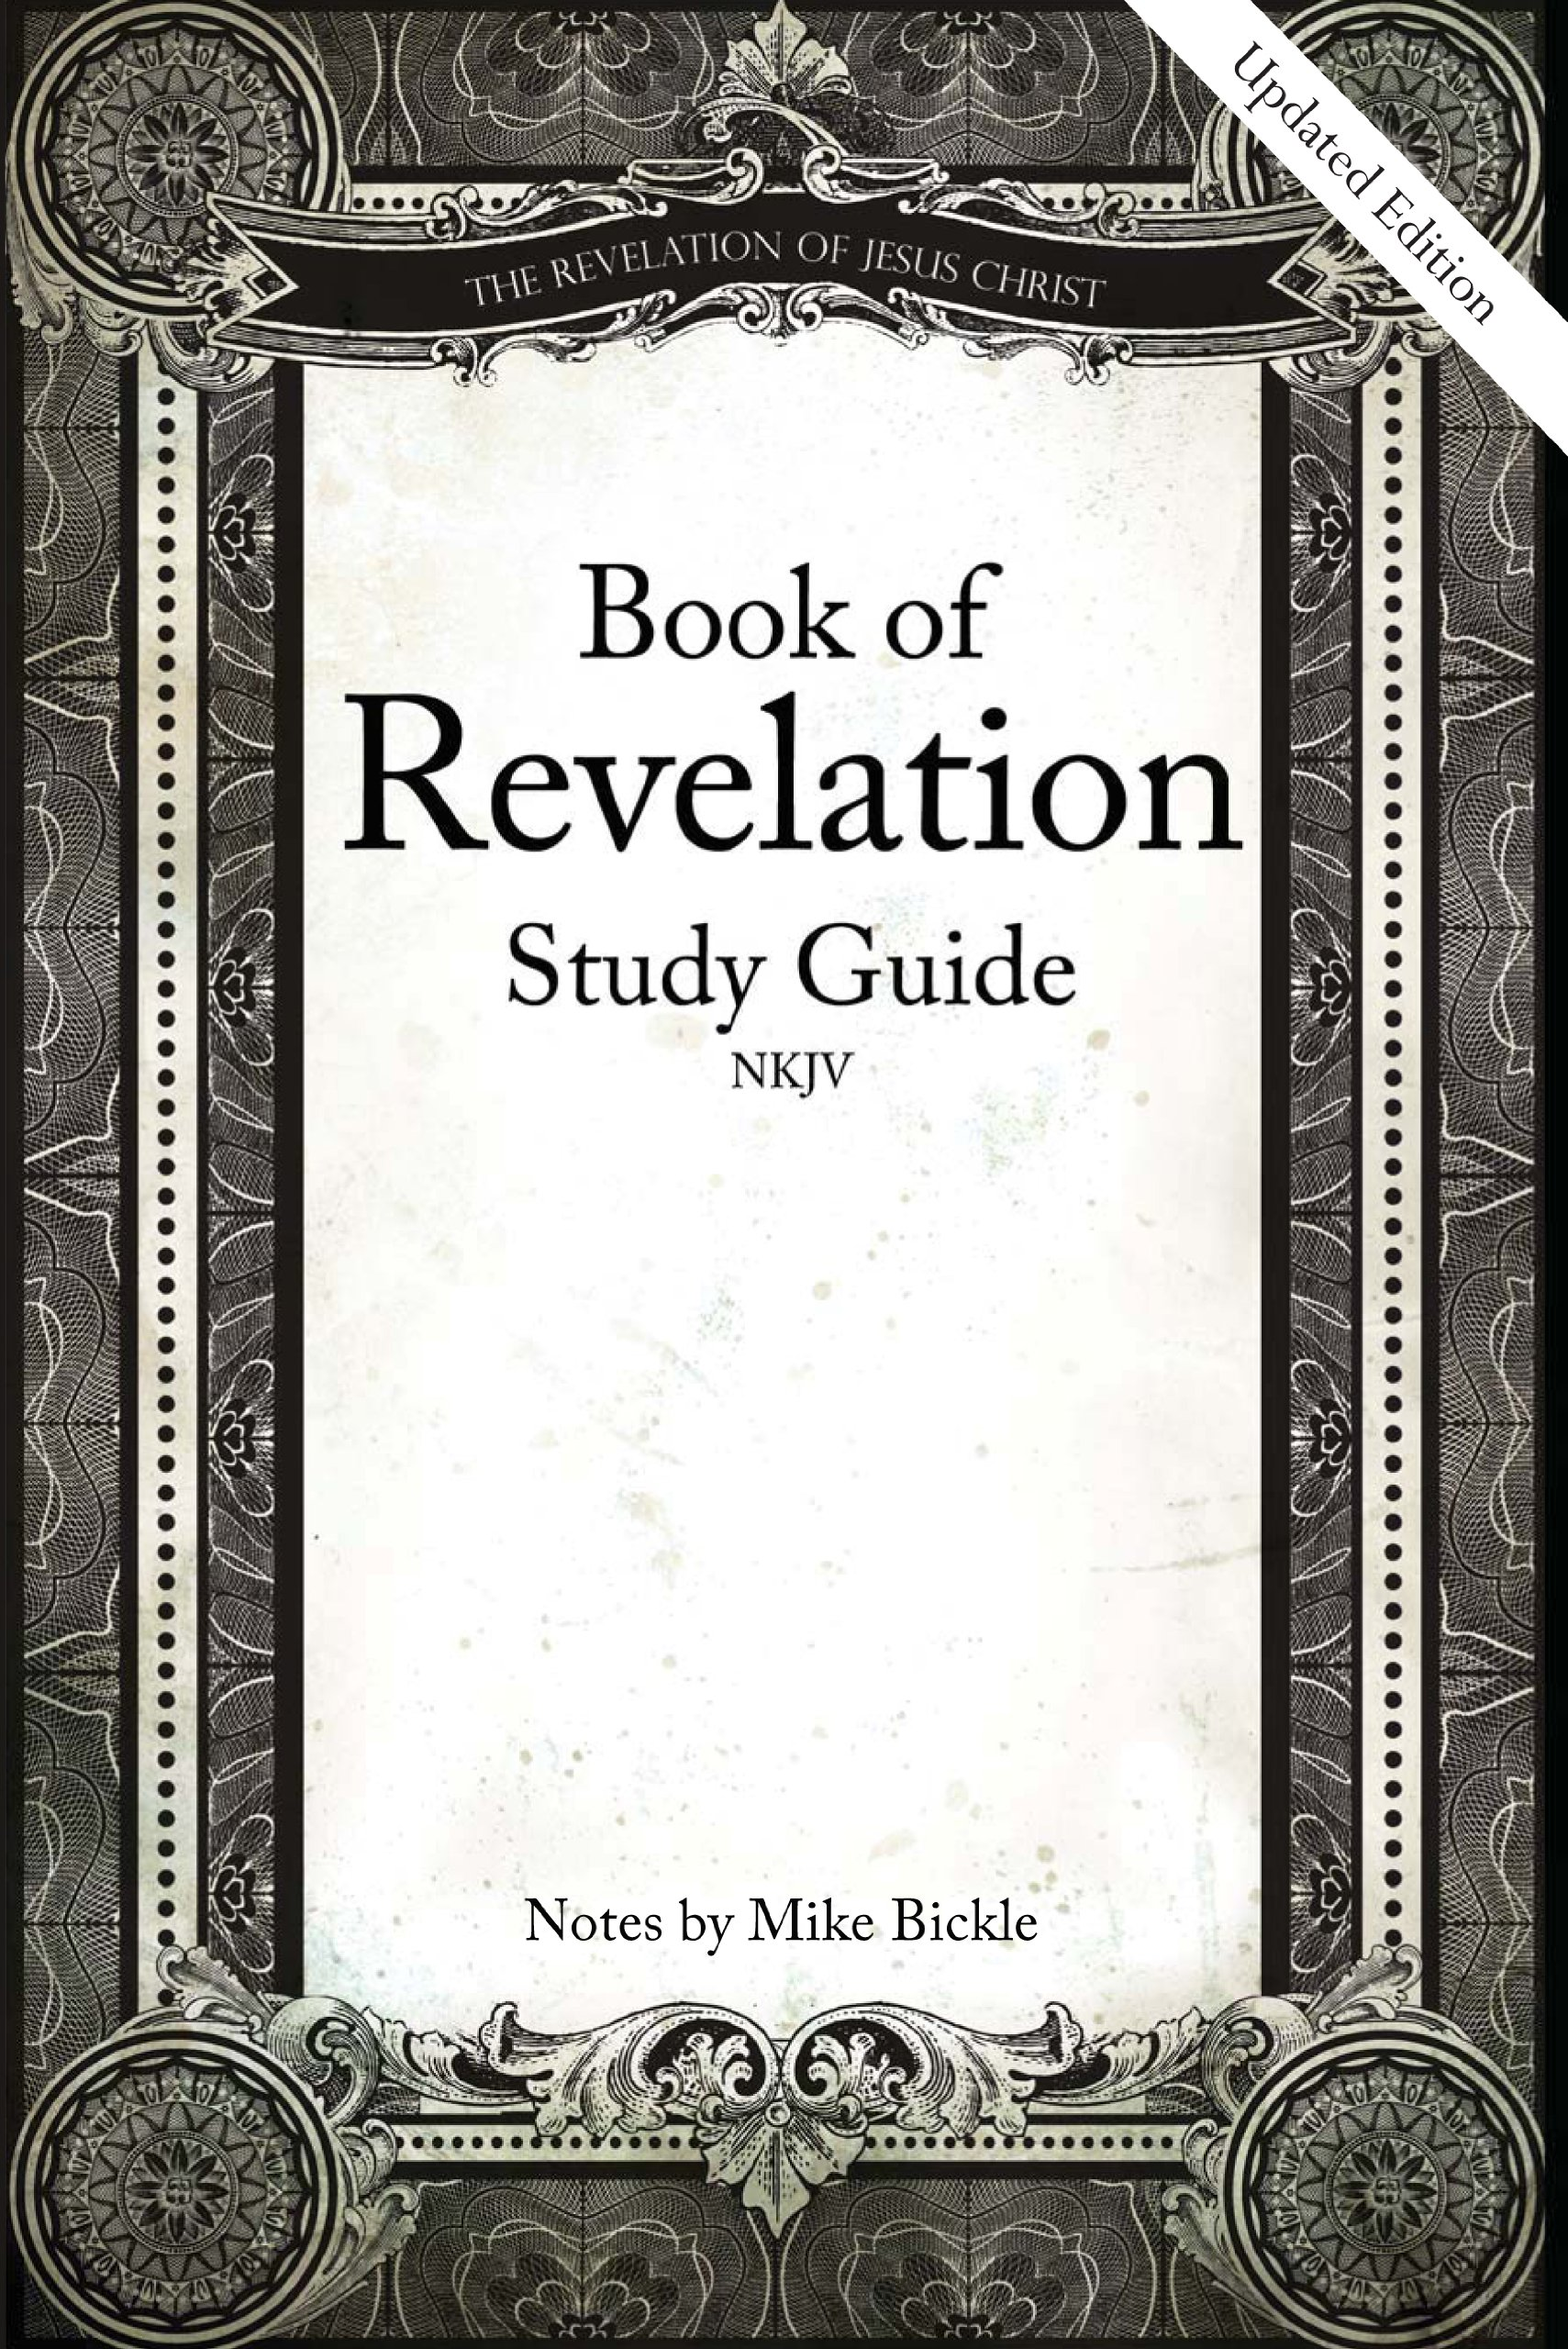 Book of Revelation Study Guide: Mike Bickle: 9780982326206: Amazon ...